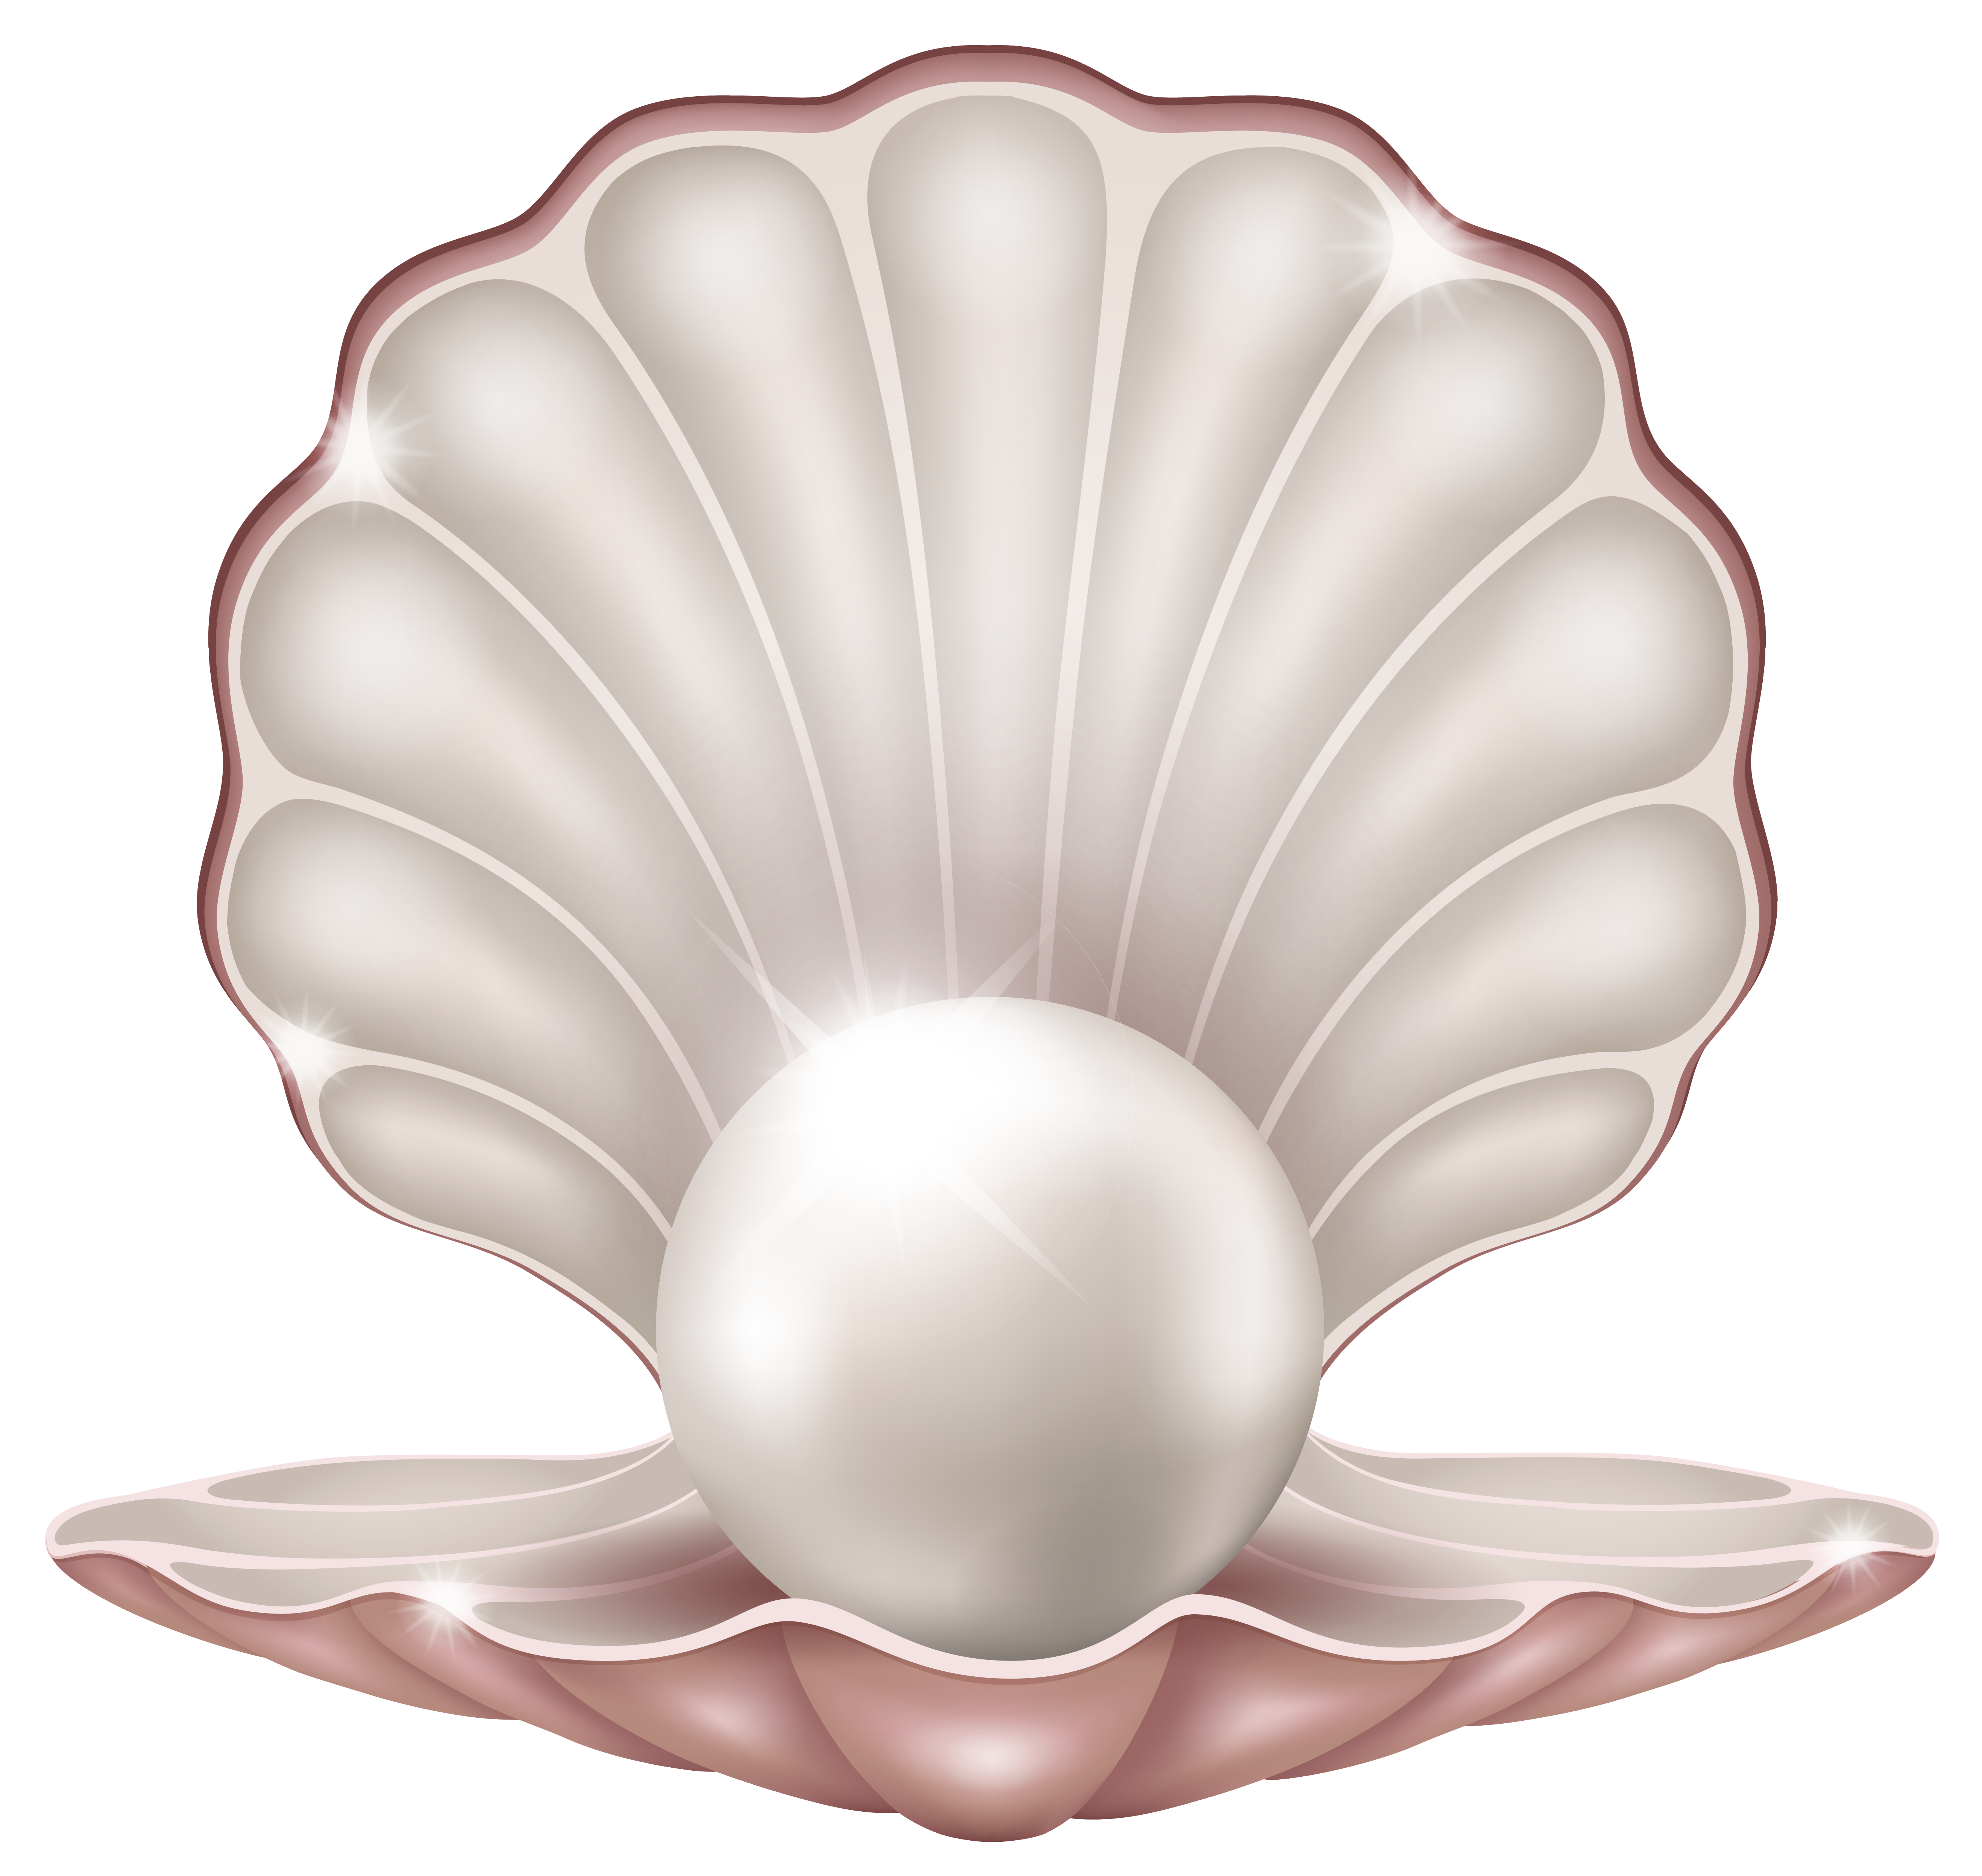 Pearl clipart #18, Download drawings